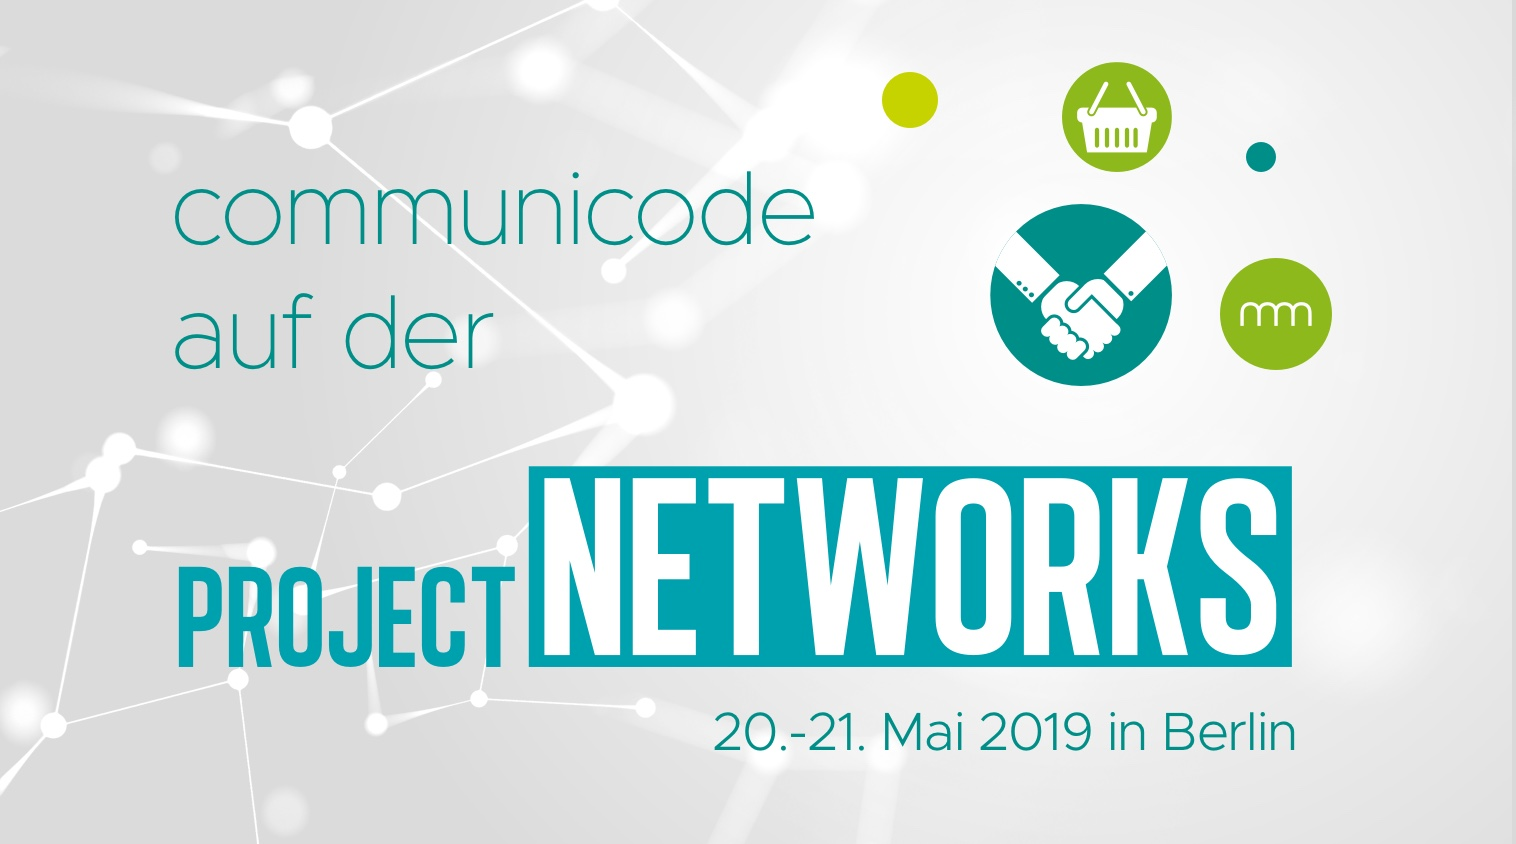 "communicode erneut Partner auf dem Strategiegipfel ""B2B E-Commerce & E-Business"" von project networks"